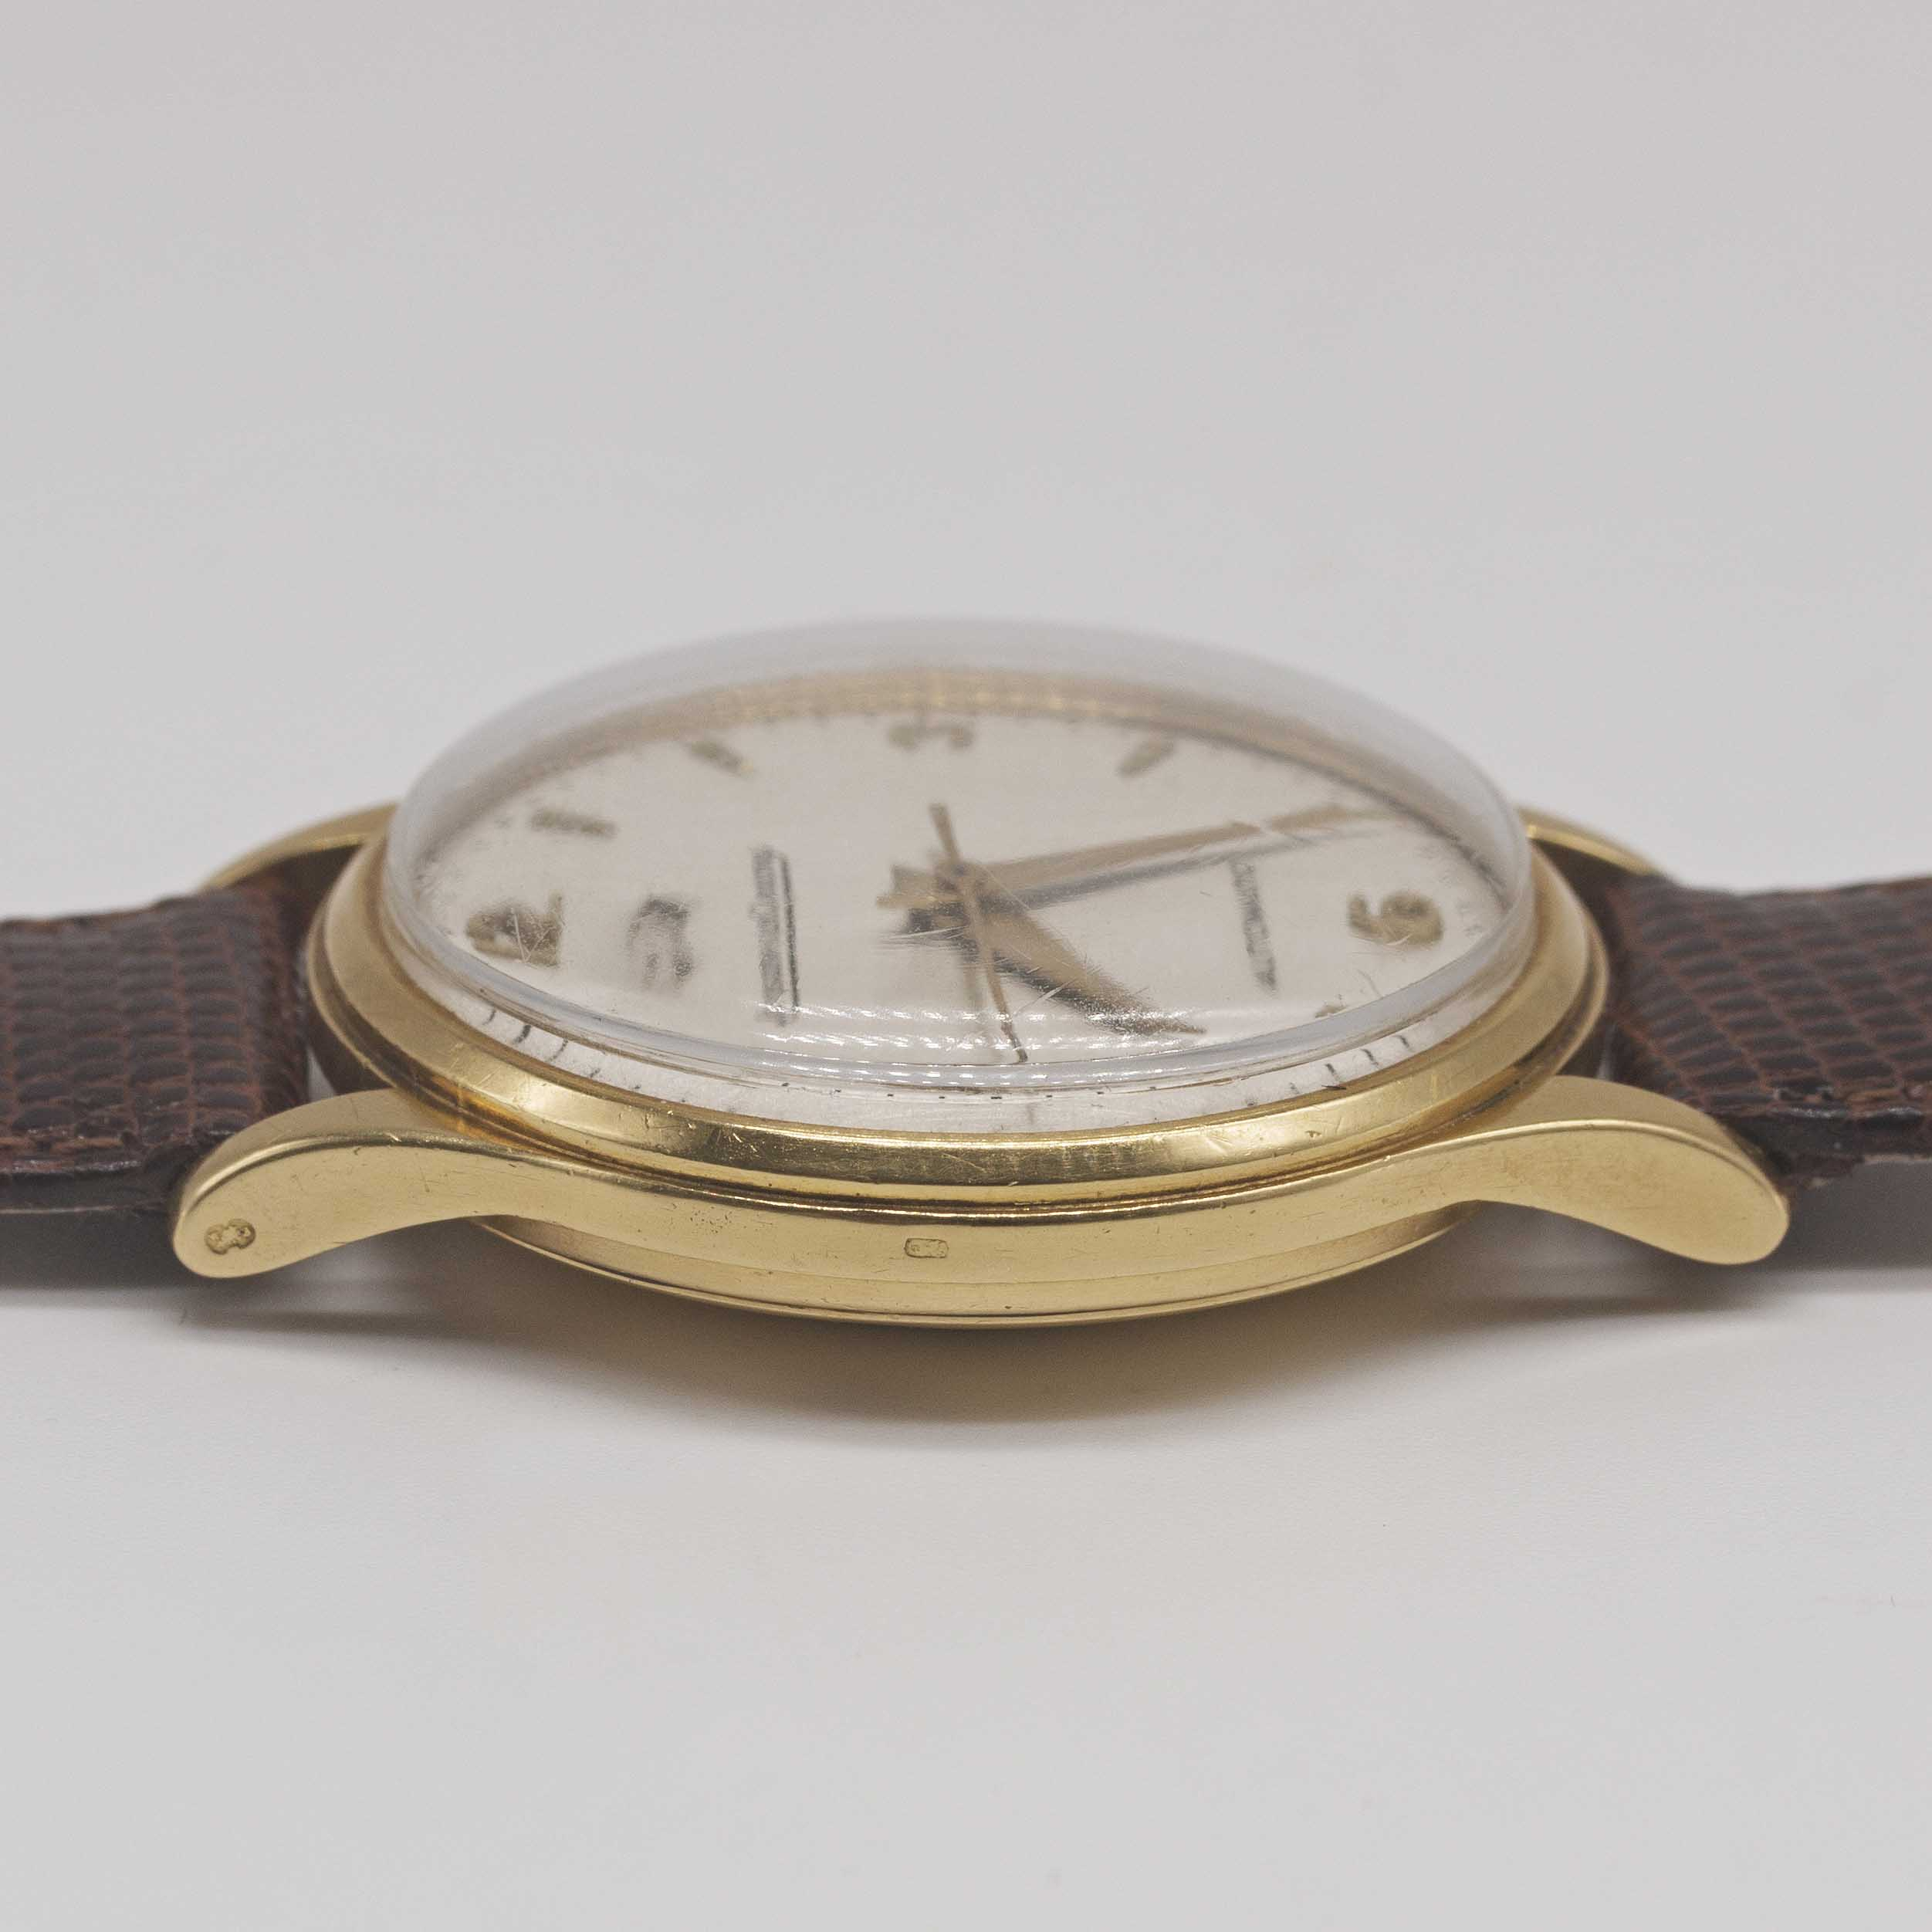 """Lot 19 - A GENTLEMAN'S LARGE SIZE 18K SOLID YELLOW GOLD JAEGER LECOULTRE """"POWERMATIC"""" POWER RESERVE WRIST"""